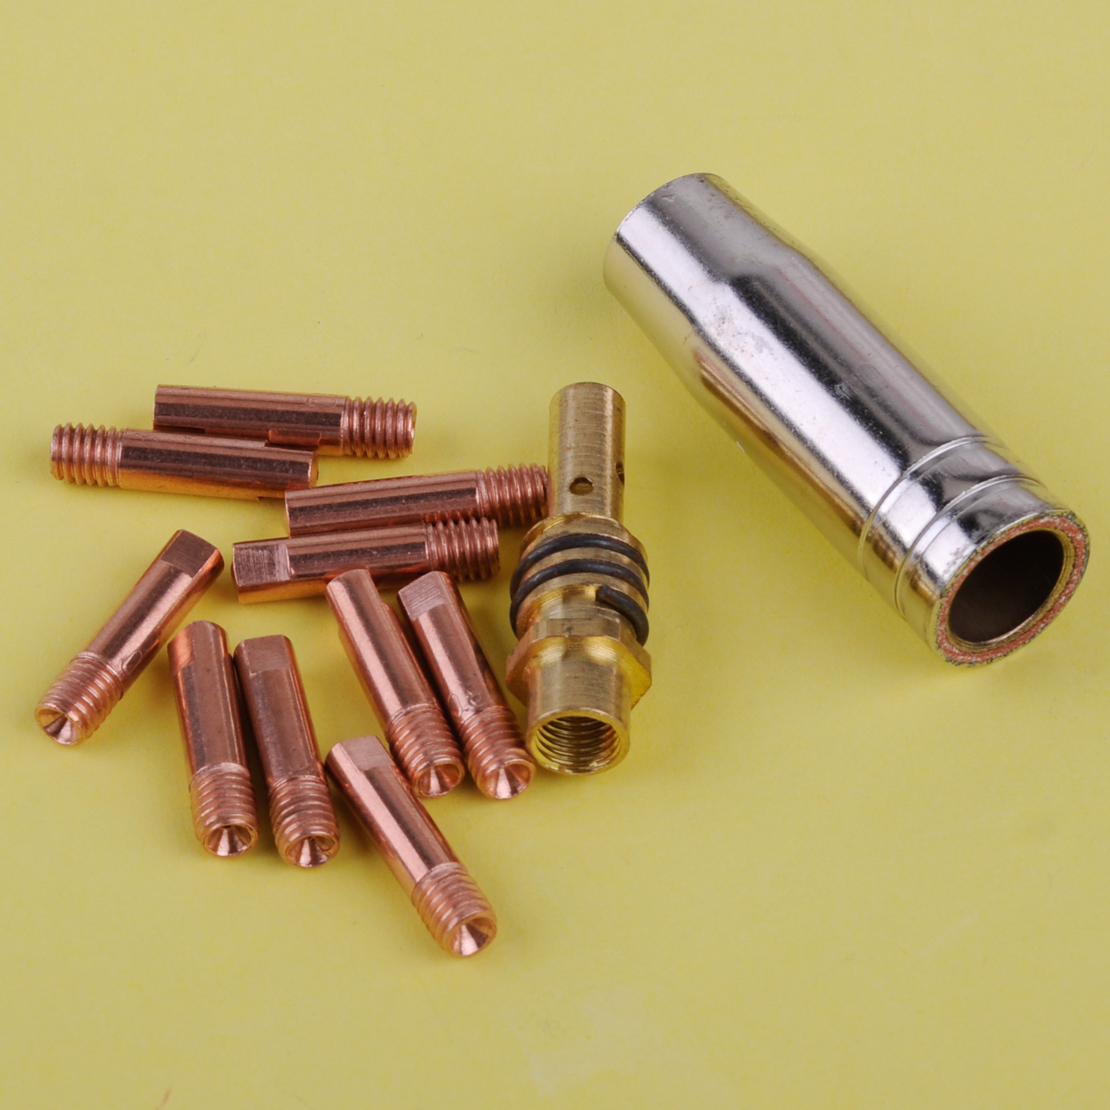 LETAOSK 12pcs MB 15AK MIG/MAG Welding Torch Contact Tip 0.8 X 25mm M6 Gas Nozzle Shroud Holder Kit